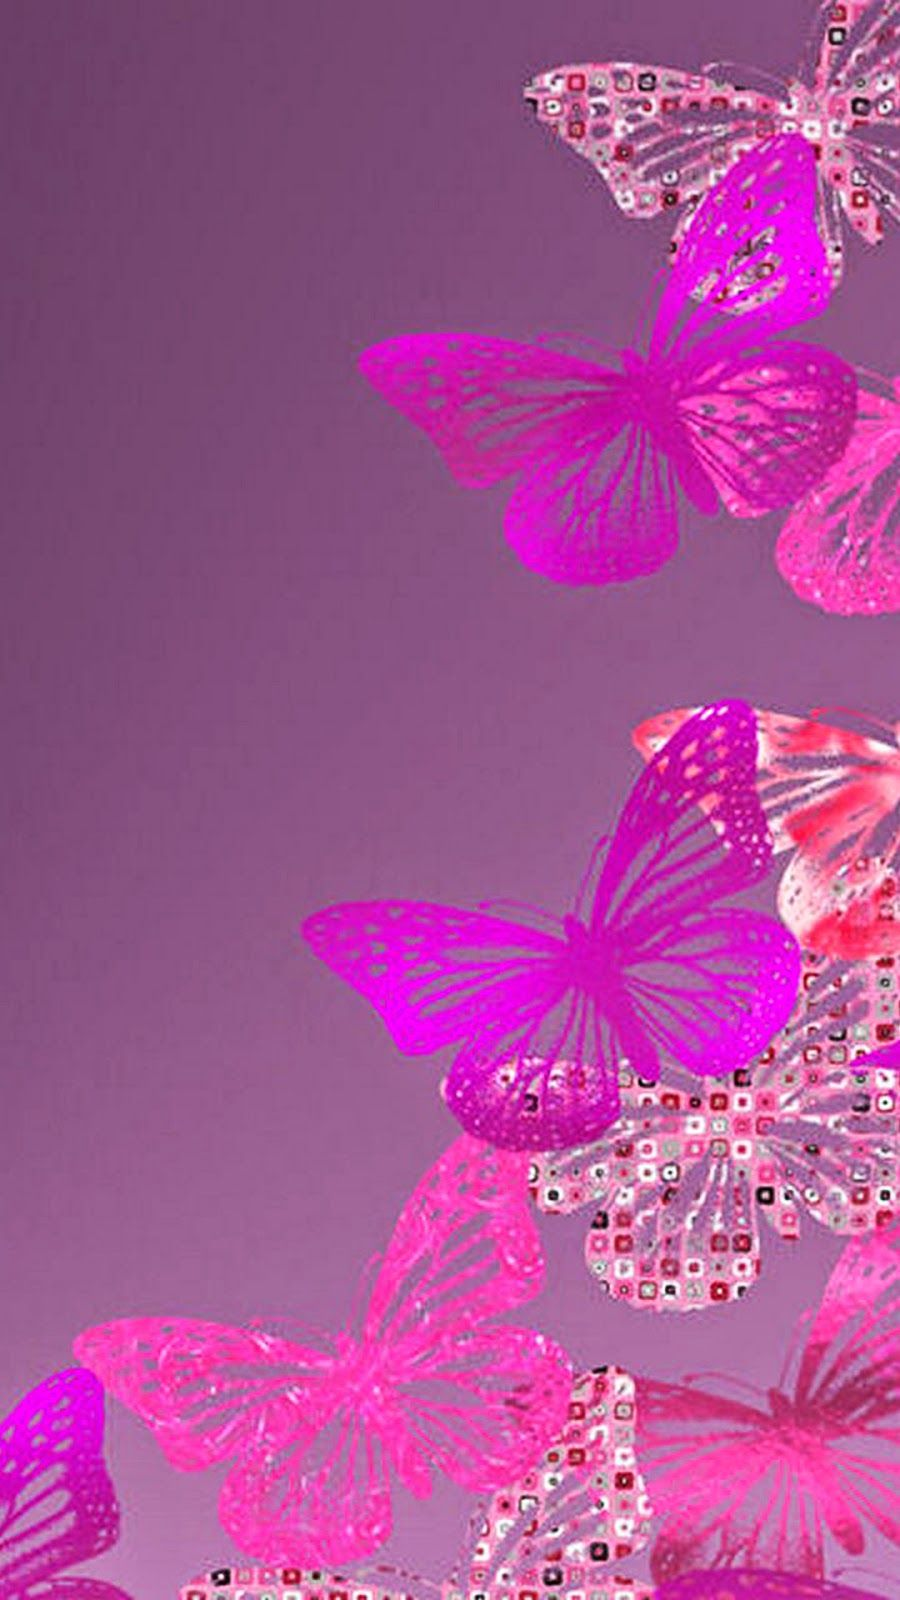 Butterfly Wallpaper   Pink Hd Wallpaper For Iphone 6 161086 900x1600